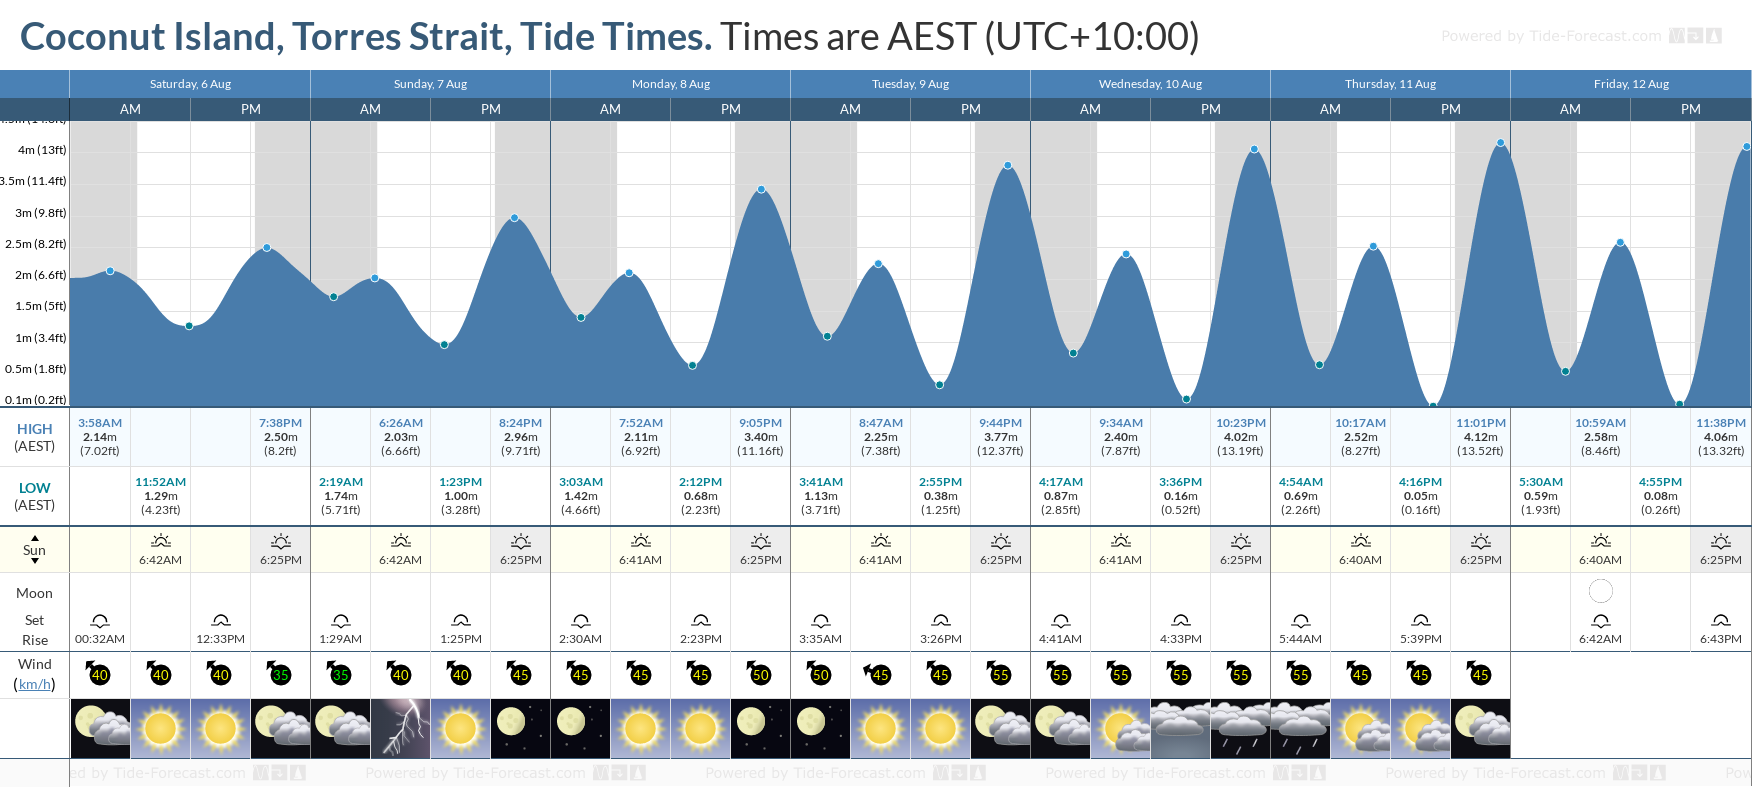 Coconut Island, Torres Strait Tide Chart including high and low tide tide times for the next 7 days